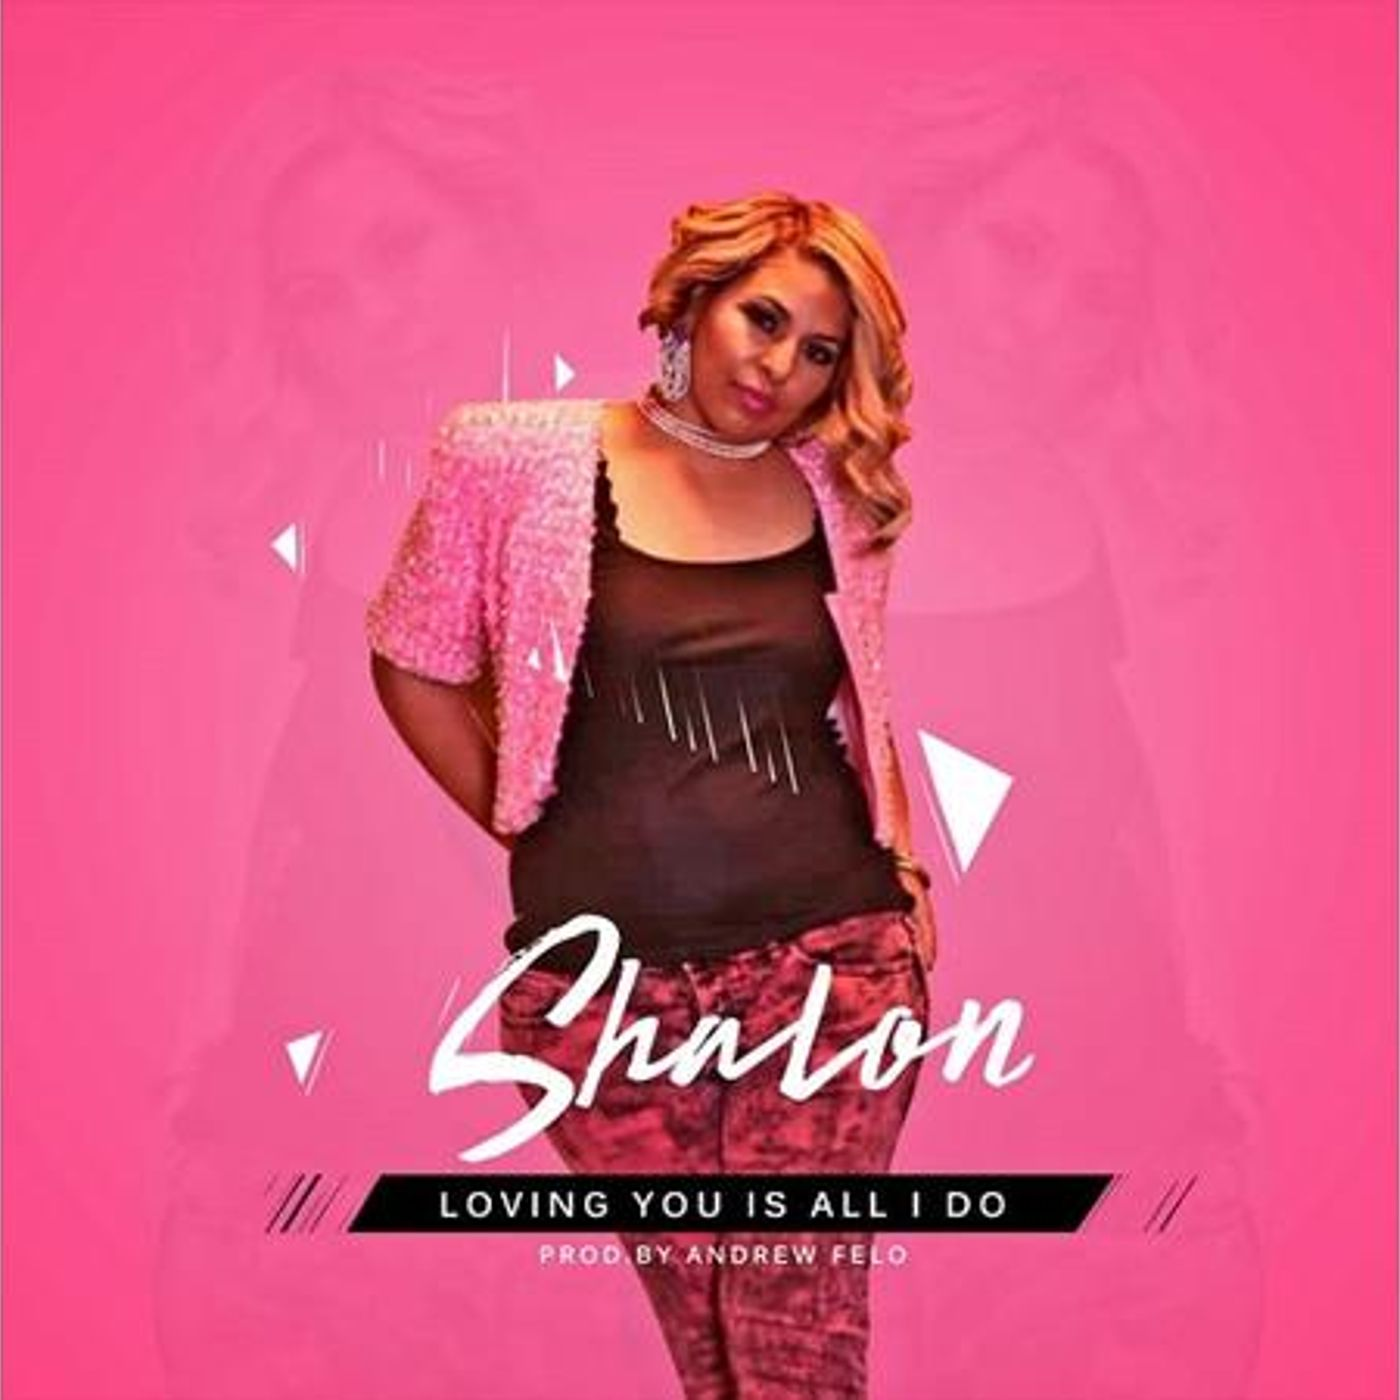 Shalon The Artist On ITNS Radio